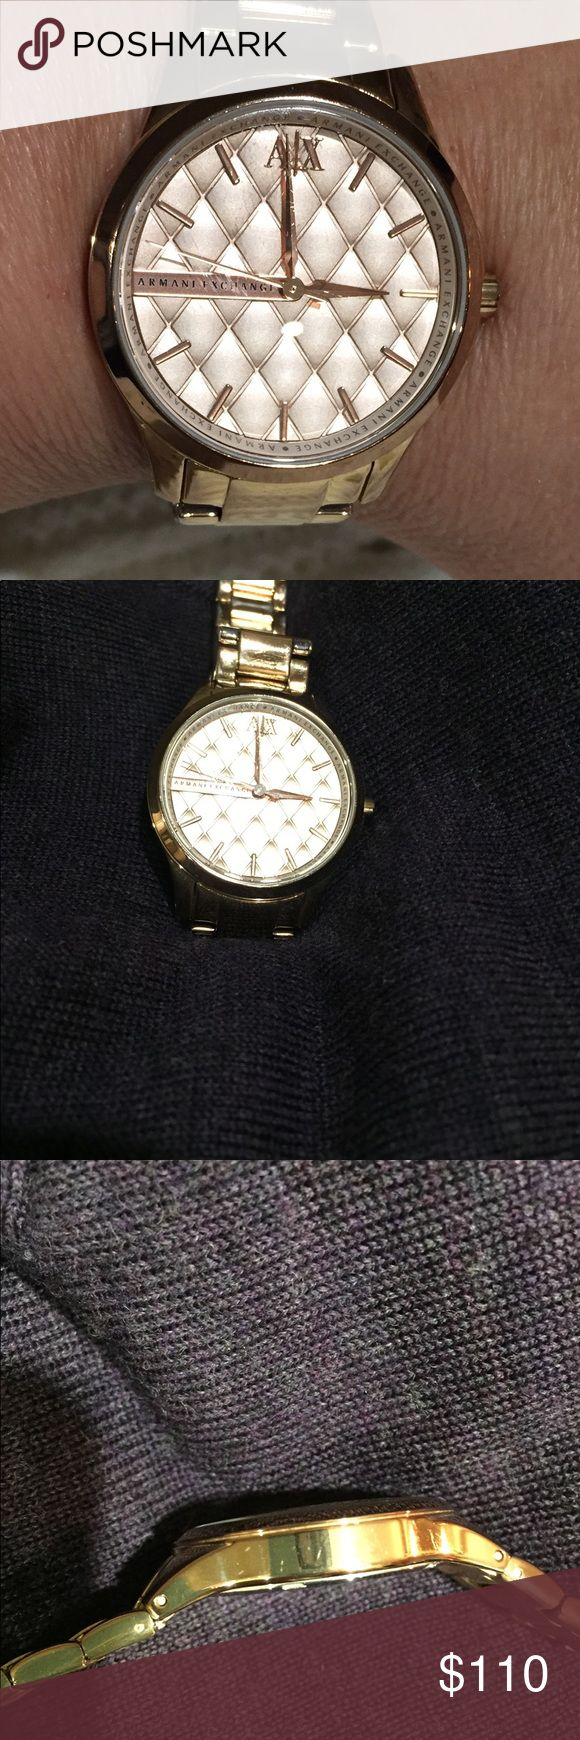 Rose Bracelet Armani Exchange Ladies Watch This rose gold chronograph represents a statement wrist accessory to complete the look with a trendy touch.  Used but in great condition — minor signs of wear Might need a battery. A/X Armani Exchange Accessories Watches